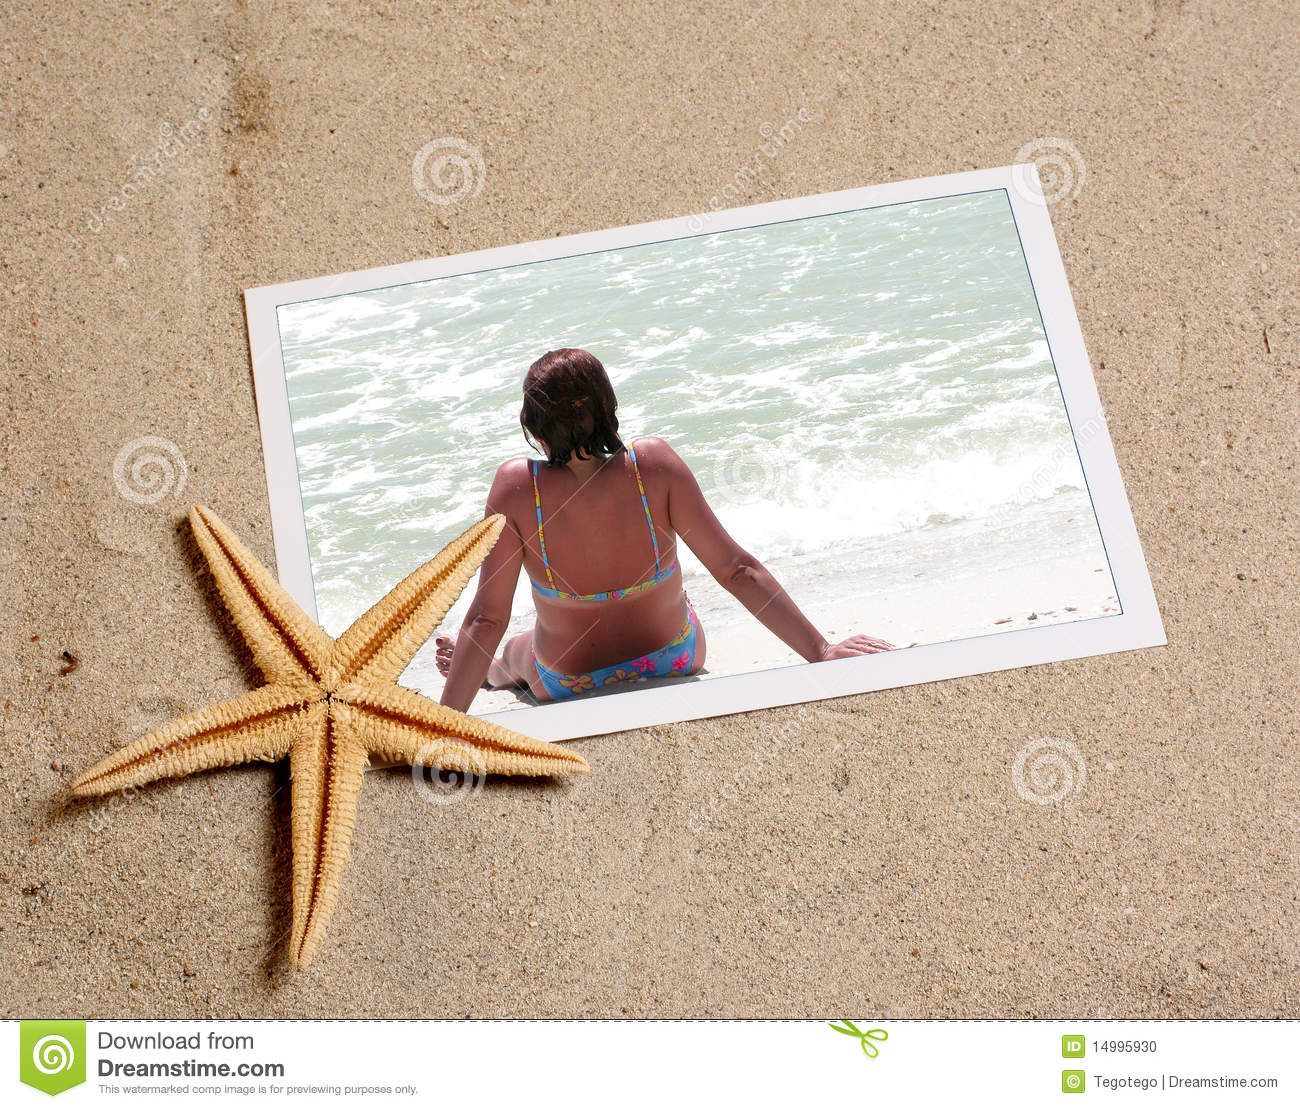 Photo in beach sand with starfish